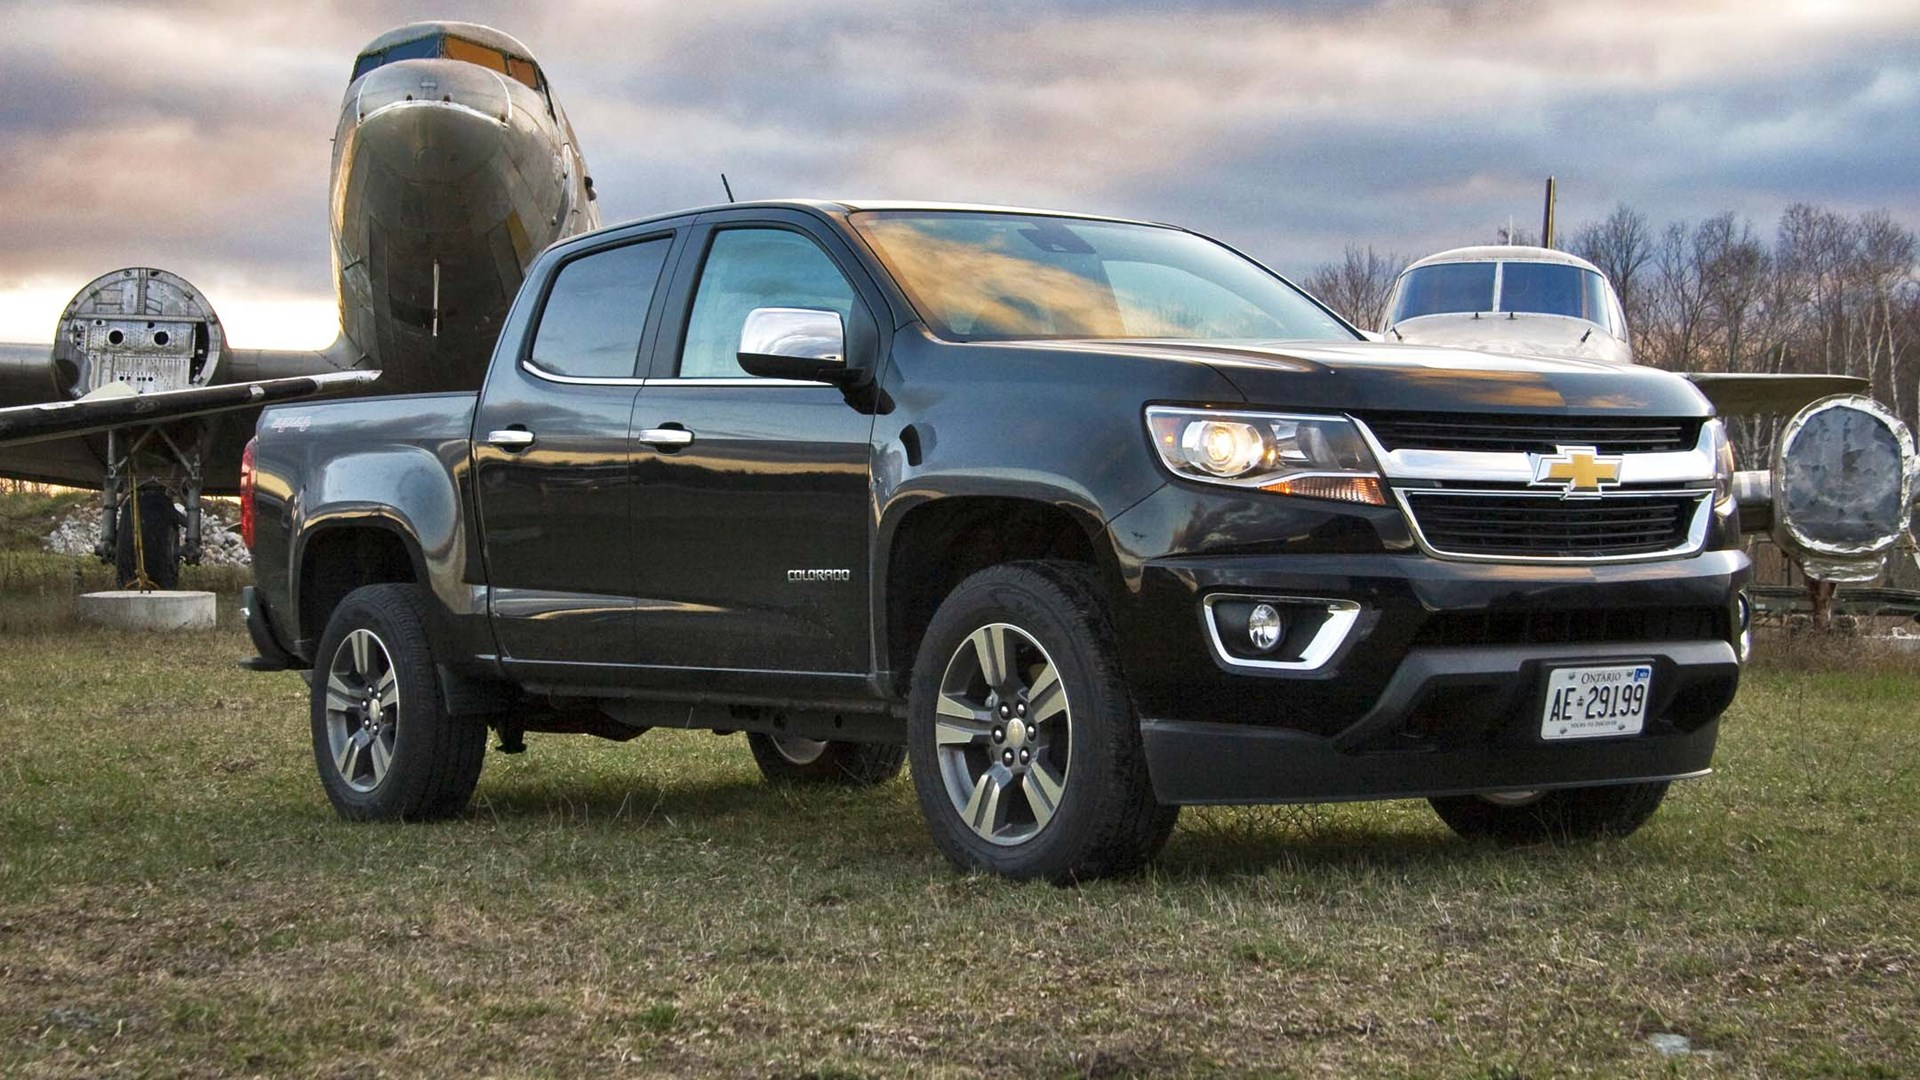 2015-2018 Chevrolet Colorado/gmc Canyon Used Vehicle Review 2021 Chevy Colorado Z71 Transmission Problems, Rims, Sound System